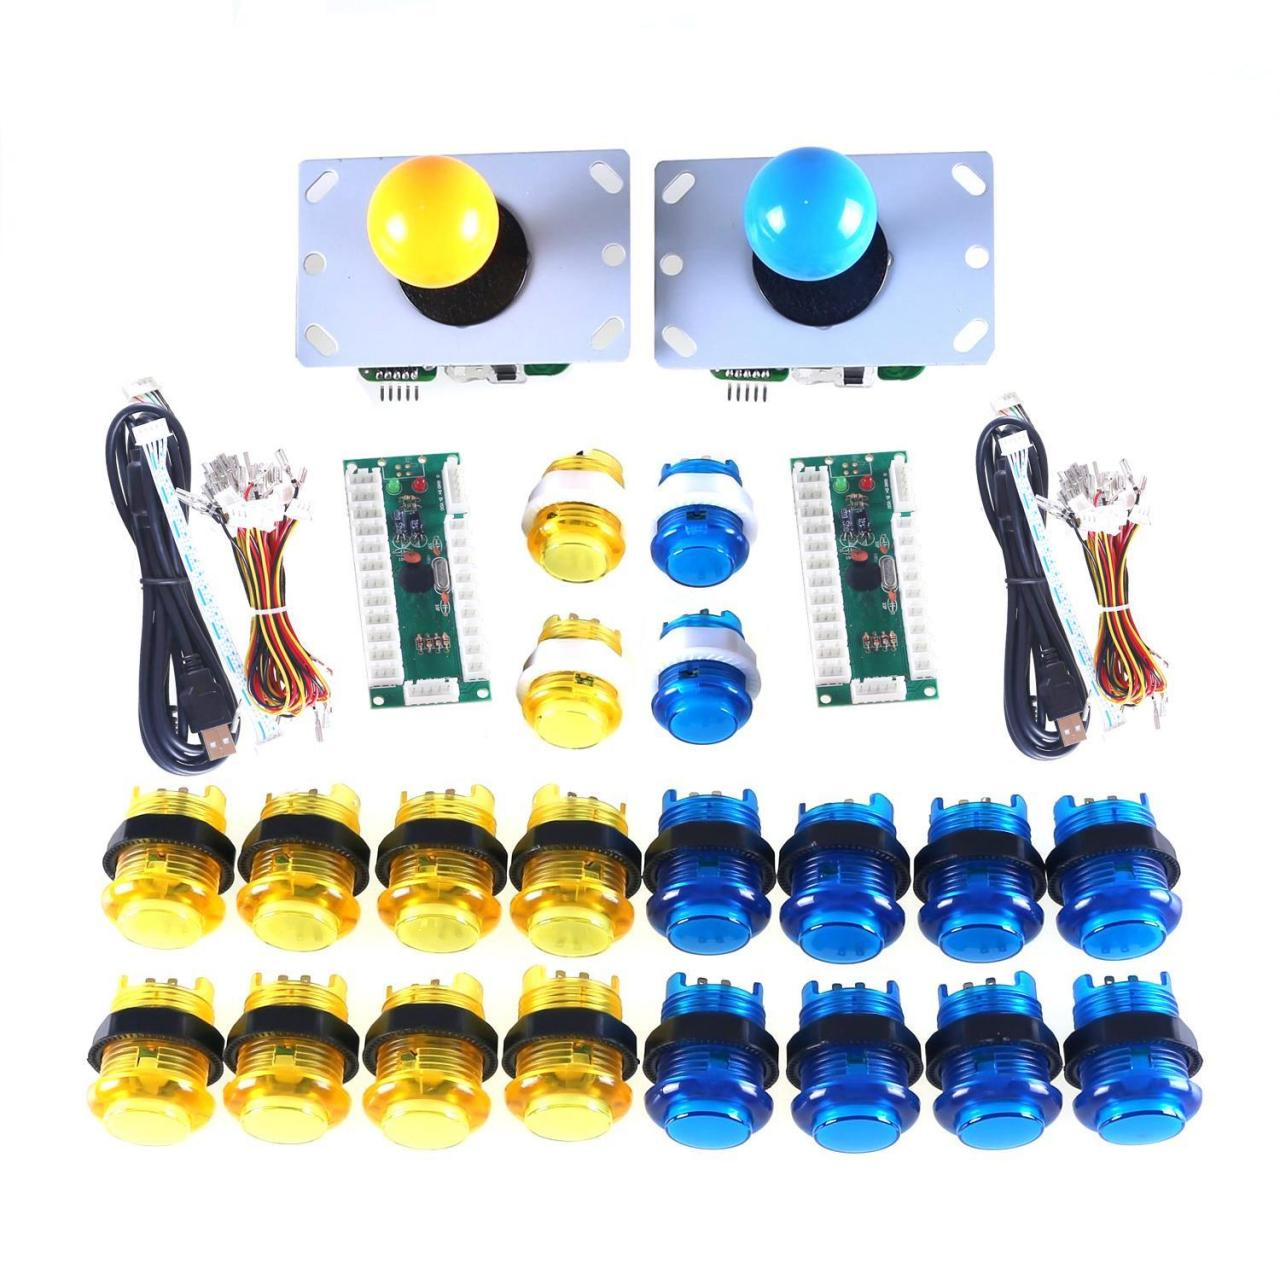 Buy cheap Yellow + Blue Arcade Button and Joystick Zero Delay Kits from wholesalers